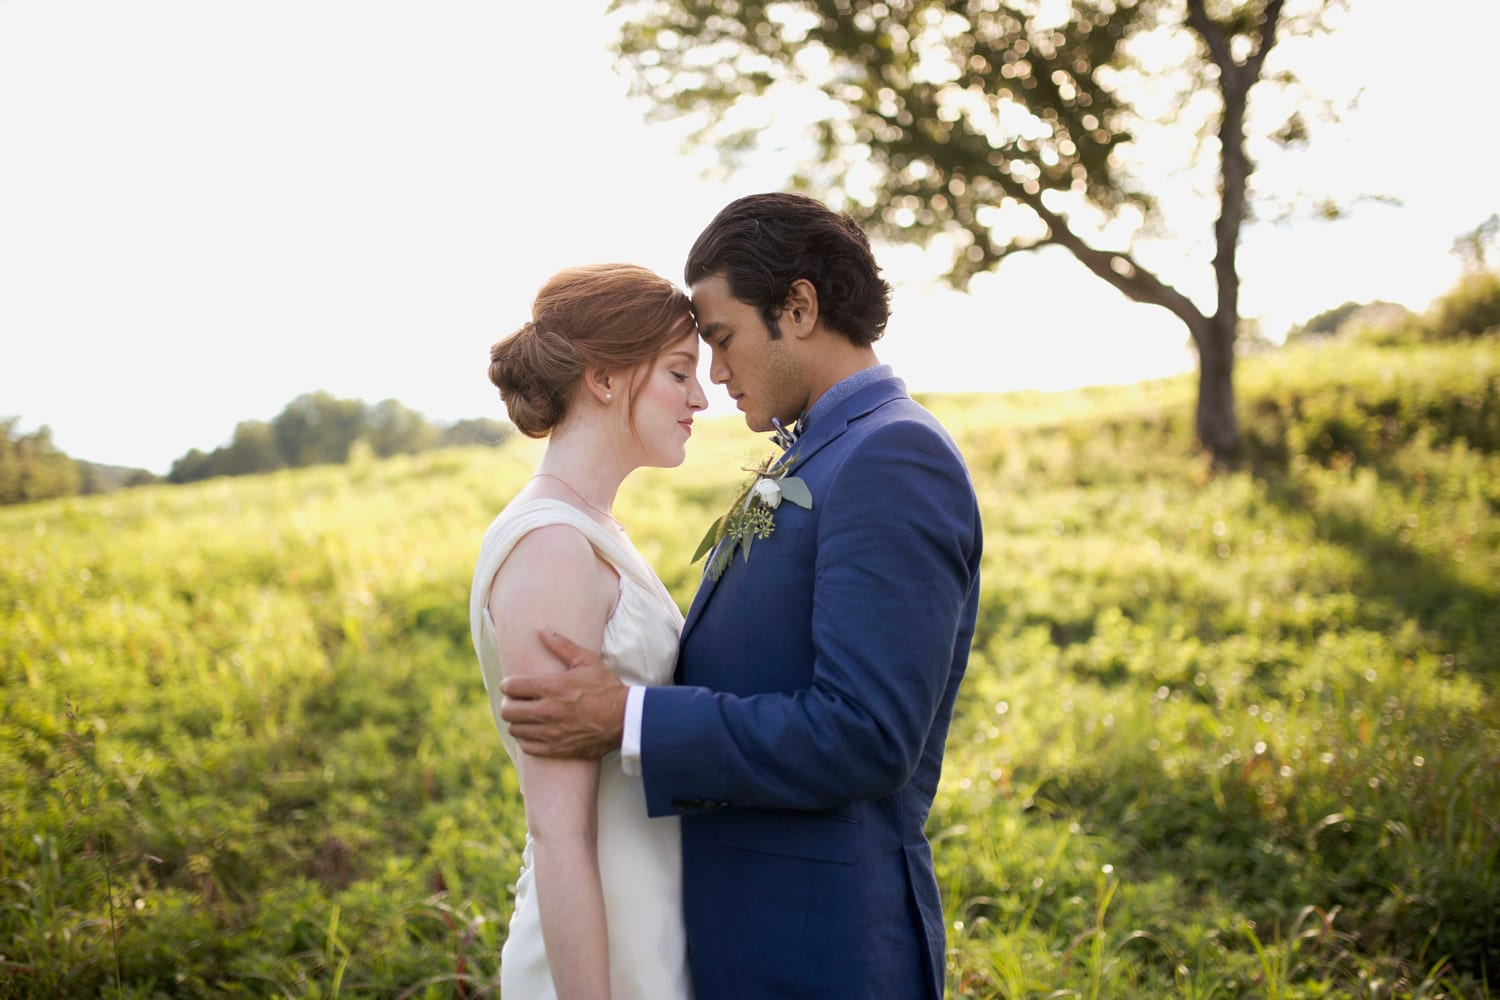 Groom holds bride in front of tree in the pasture